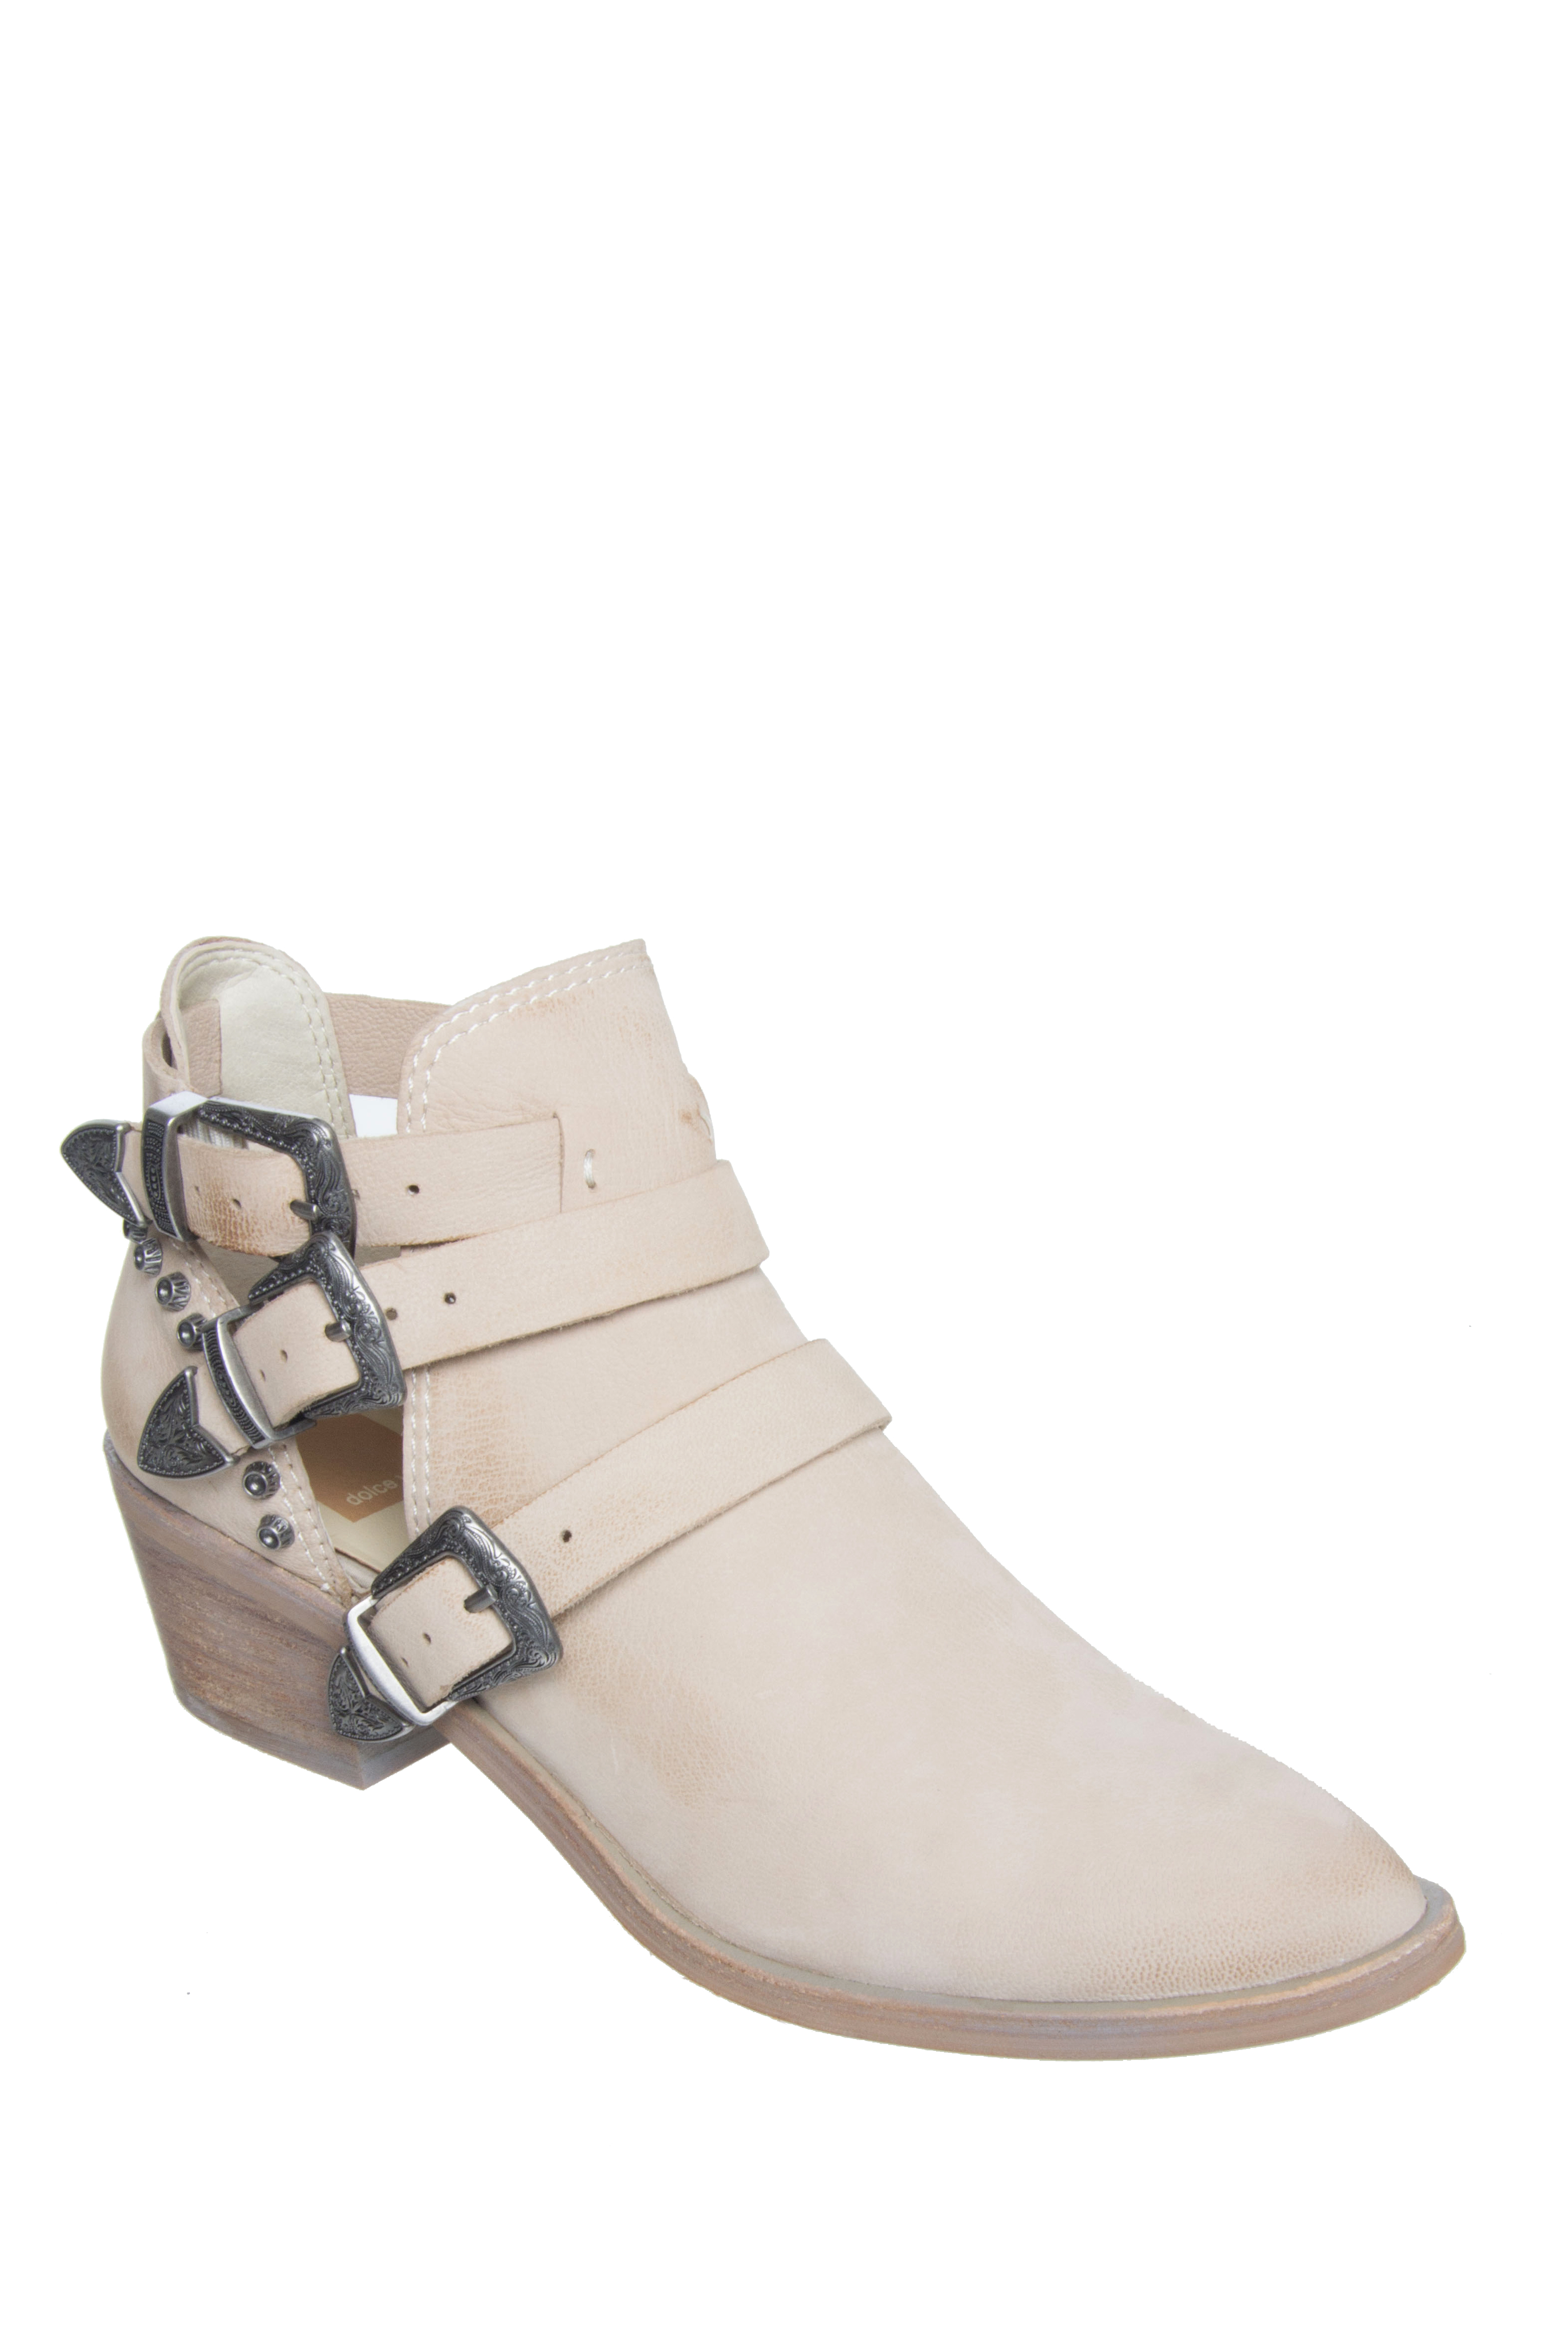 Dolce Vita Spur Buckle Booties - Sand